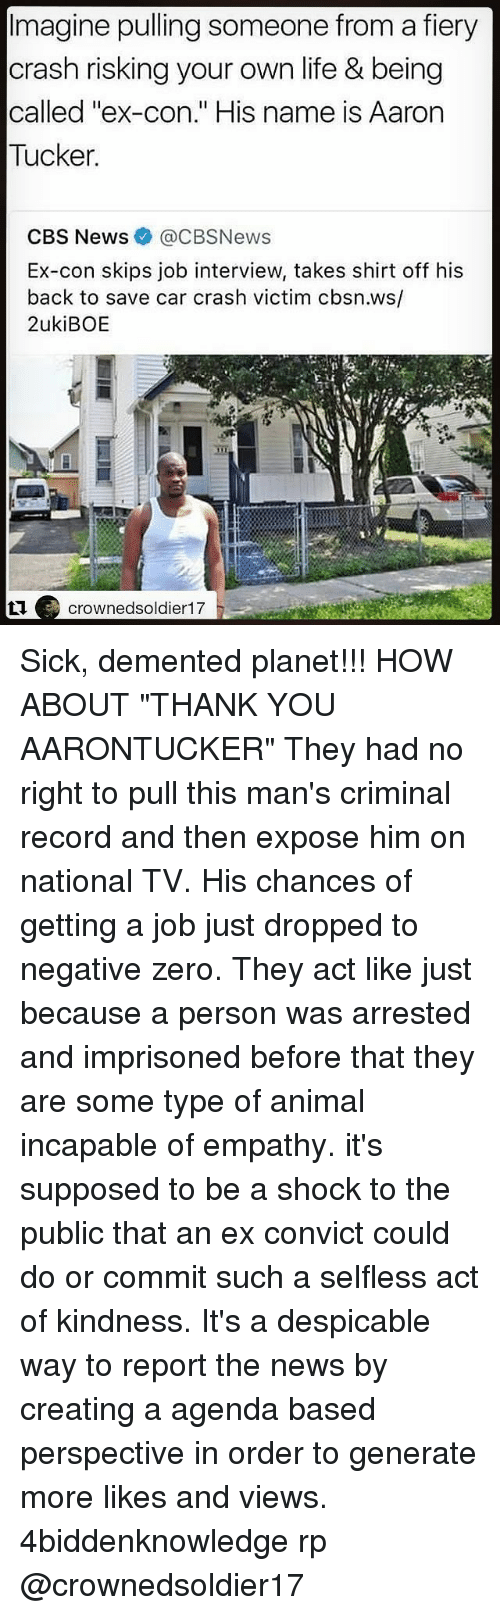 "Car Crashing: Imagine pulling someone from a fiery  crash risking your own life & being  called ""ex-con."" His name is Aarorn  Tucker  CBS News@CBSNews  Ex-con skips job interview, takes shirt off his  back to save car crash victim cbsn.ws/  2ukiBOE  crownedsoldier17 Sick, demented planet!!! HOW ABOUT ""THANK YOU AARONTUCKER"" They had no right to pull this man's criminal record and then expose him on national TV. His chances of getting a job just dropped to negative zero. They act like just because a person was arrested and imprisoned before that they are some type of animal incapable of empathy. it's supposed to be a shock to the public that an ex convict could do or commit such a selfless act of kindness. It's a despicable way to report the news by creating a agenda based perspective in order to generate more likes and views. 4biddenknowledge rp @crownedsoldier17"